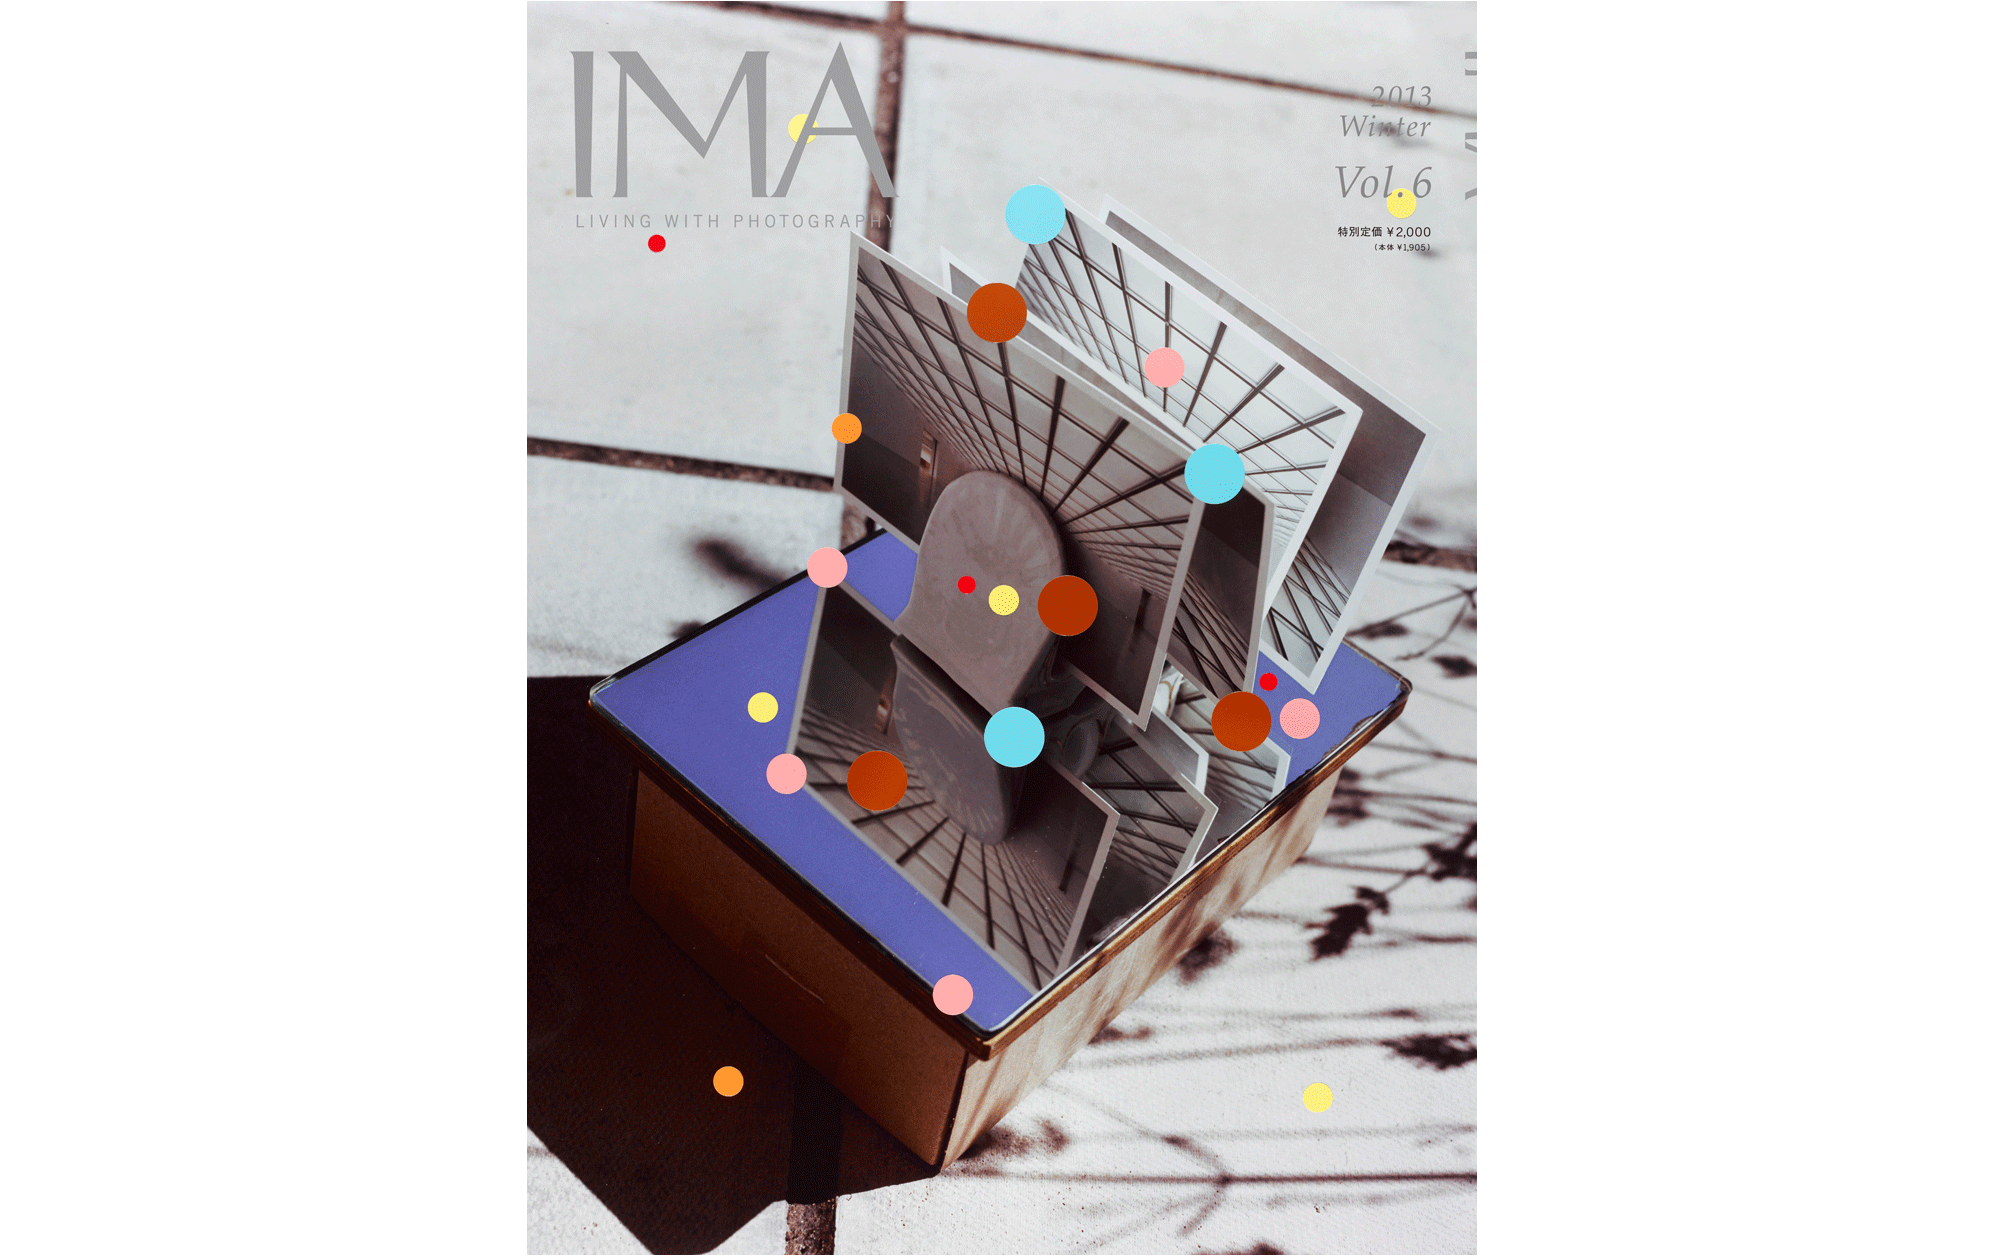 IMA 2013 Winter Vol.6